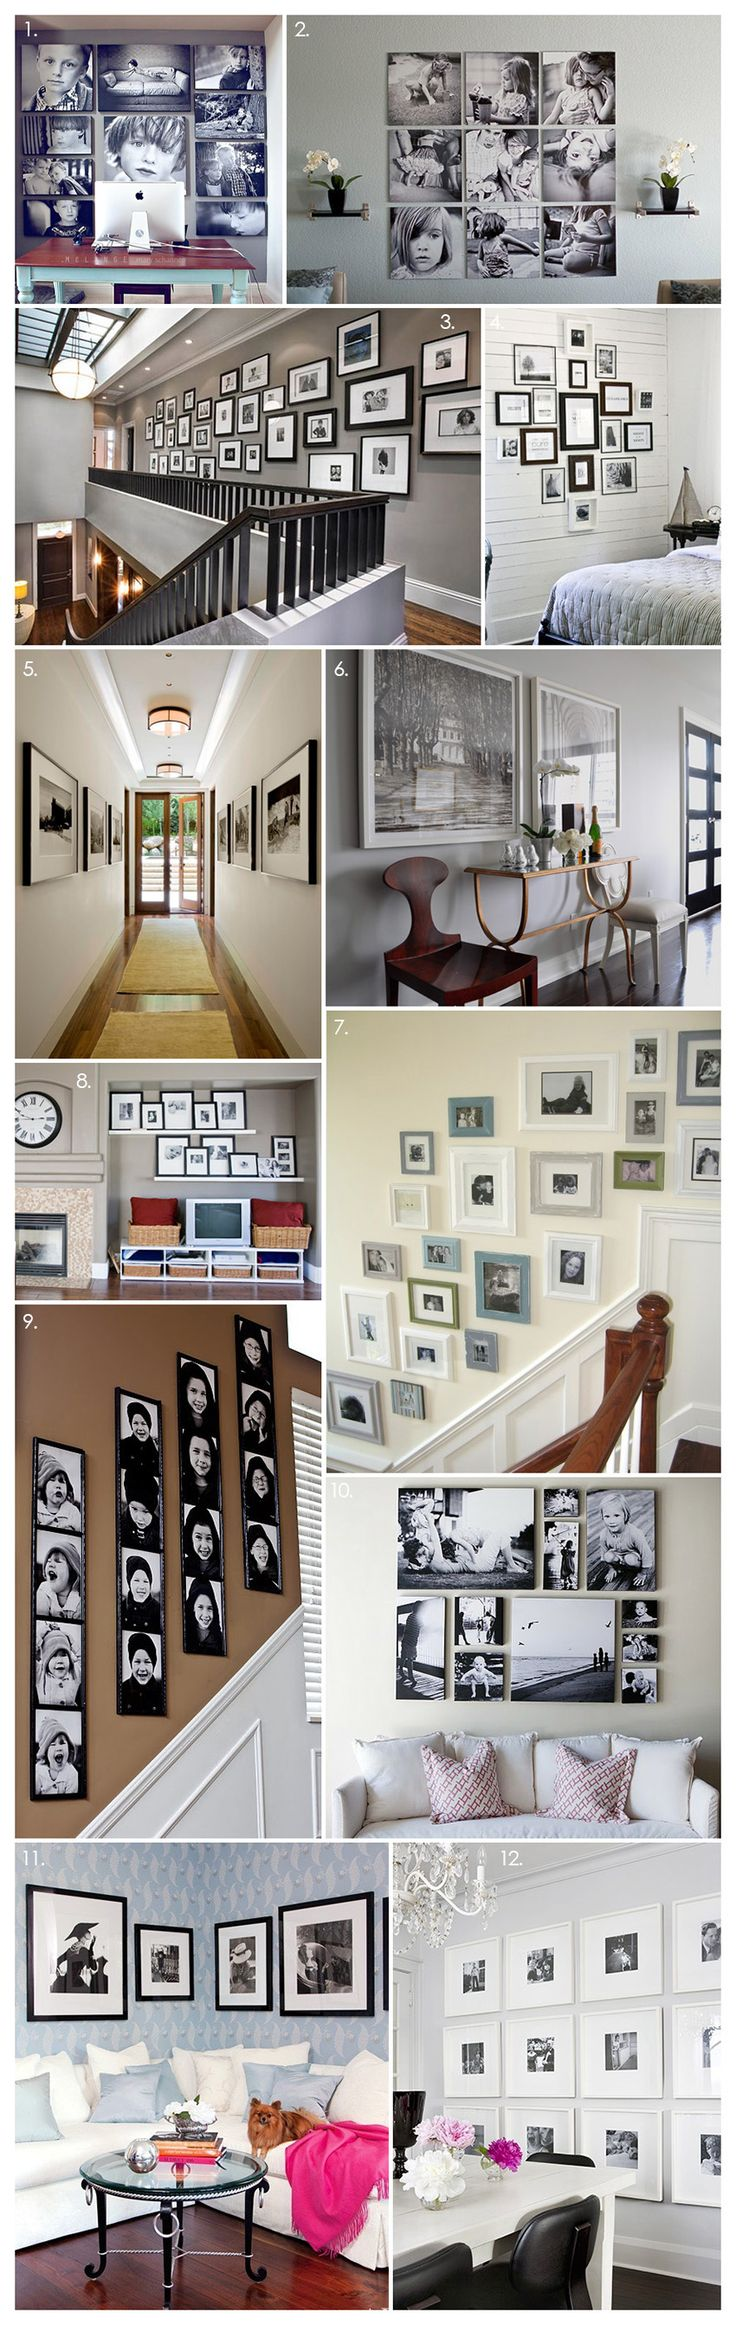 More beautiful black & white photography displays - I love option #7 for my living room by mixing up the blues, greens, whites & off white frames, it'll maintain my beach theme :)